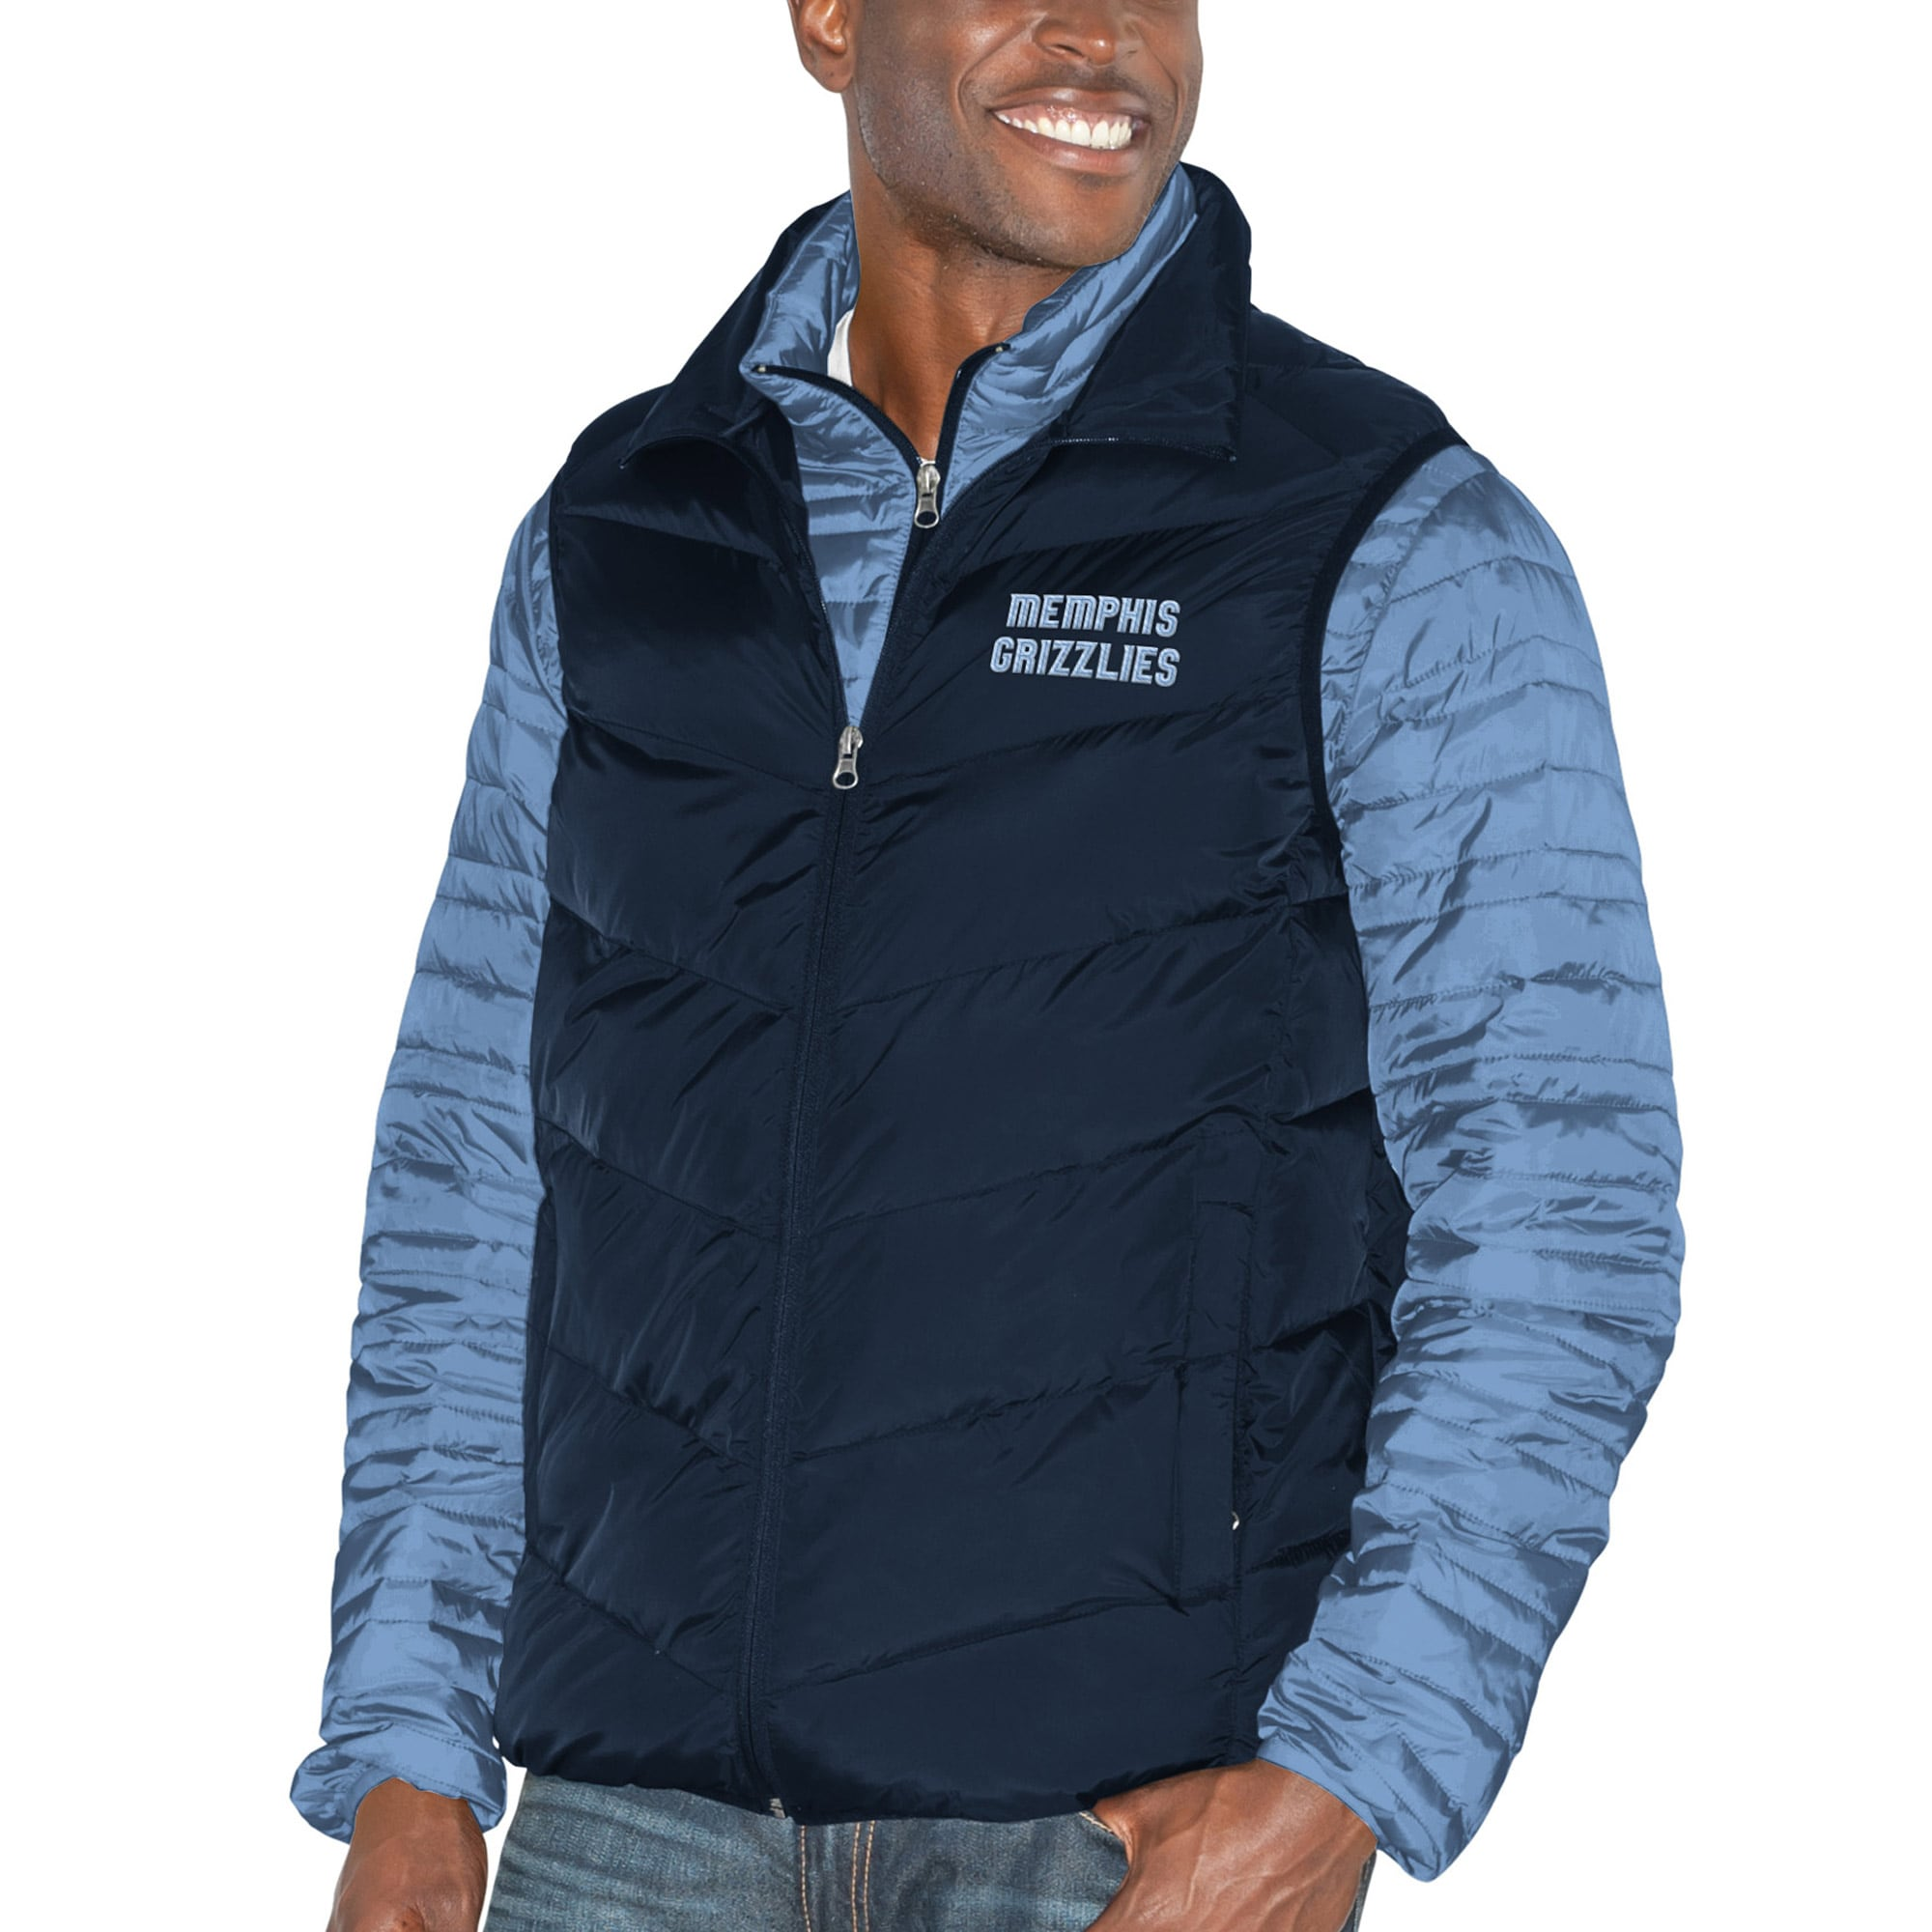 Memphis Grizzlies G-III Sports by Carl Banks Three & Out 3-in-1 System Full-Zip Vest & Jacket Set - Navy/Light Blue